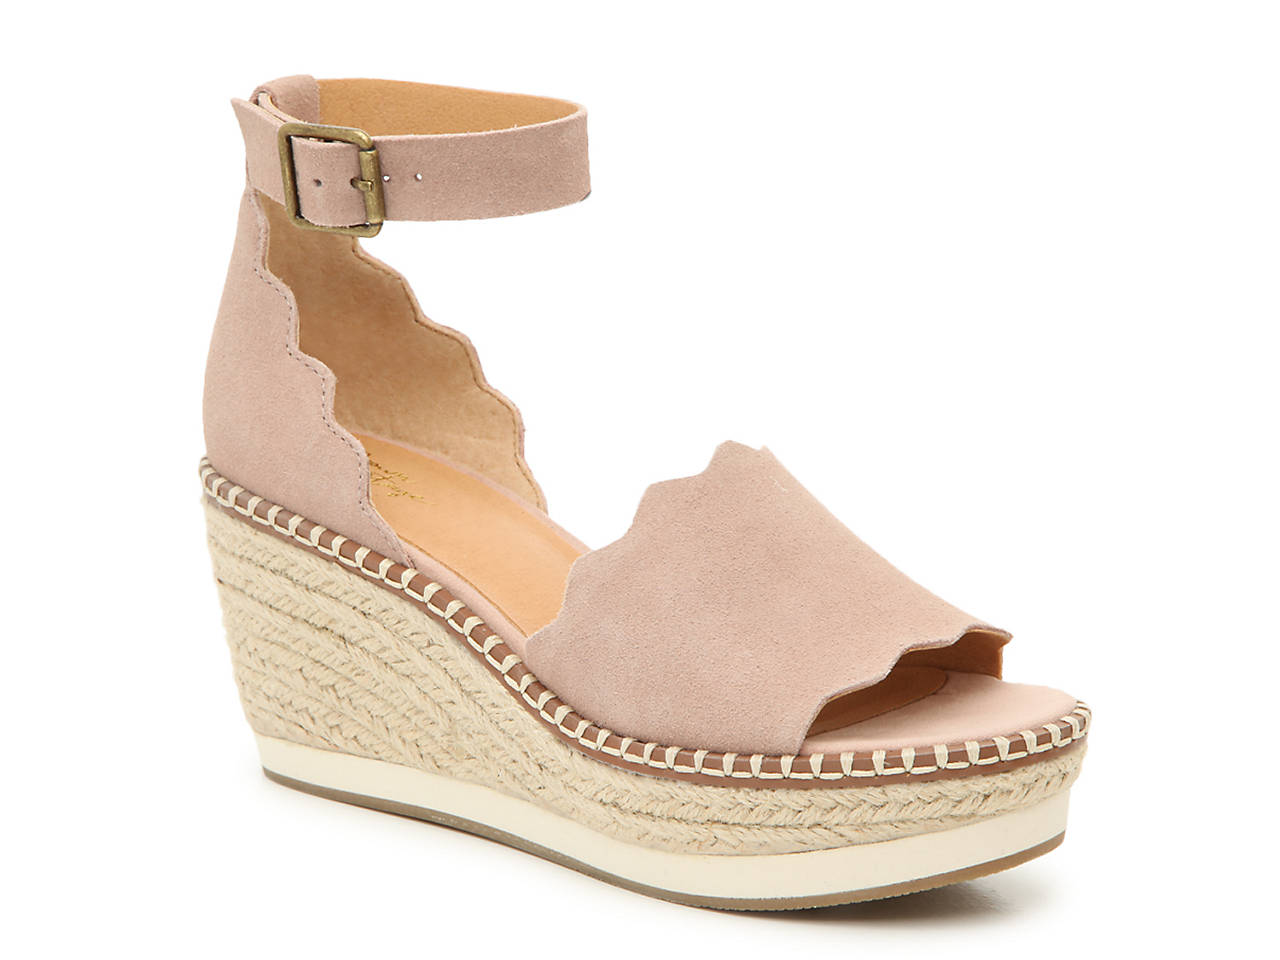 168c1c56e4 Crown Vintage Daffodil Espadrille Wedge Sandal Women's Shoes | DSW